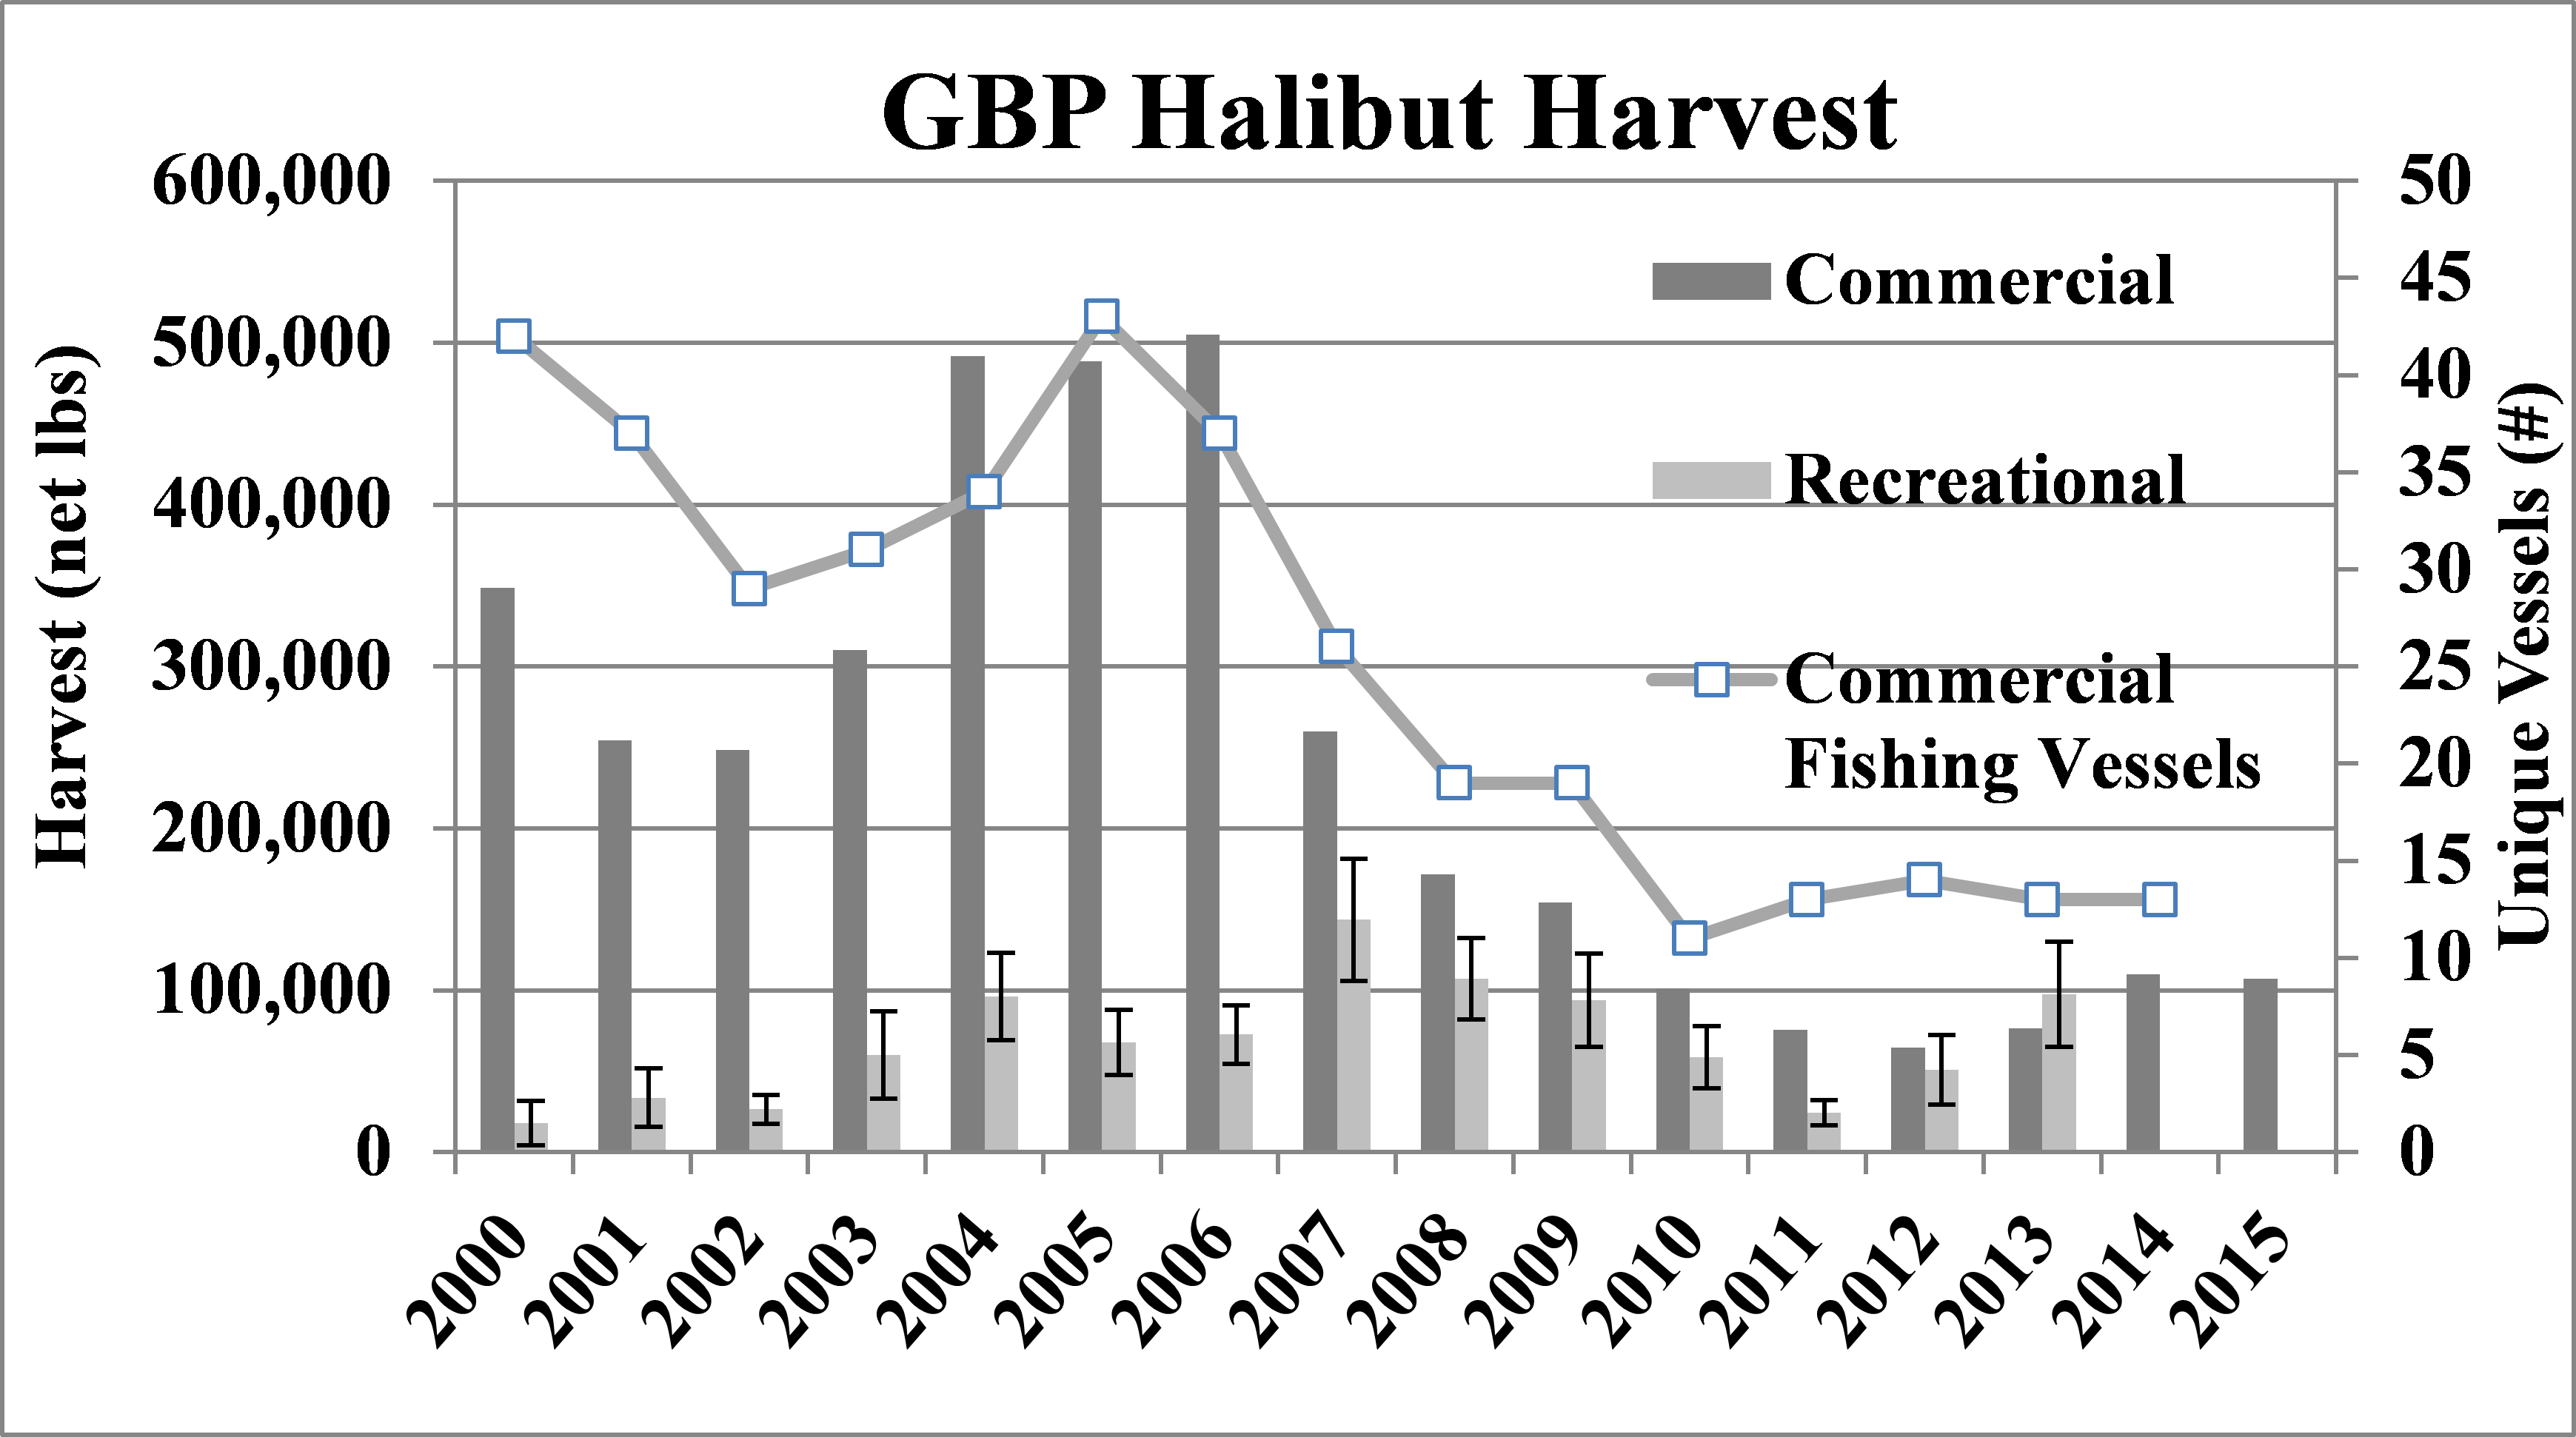 figure of gbp halibut harvet